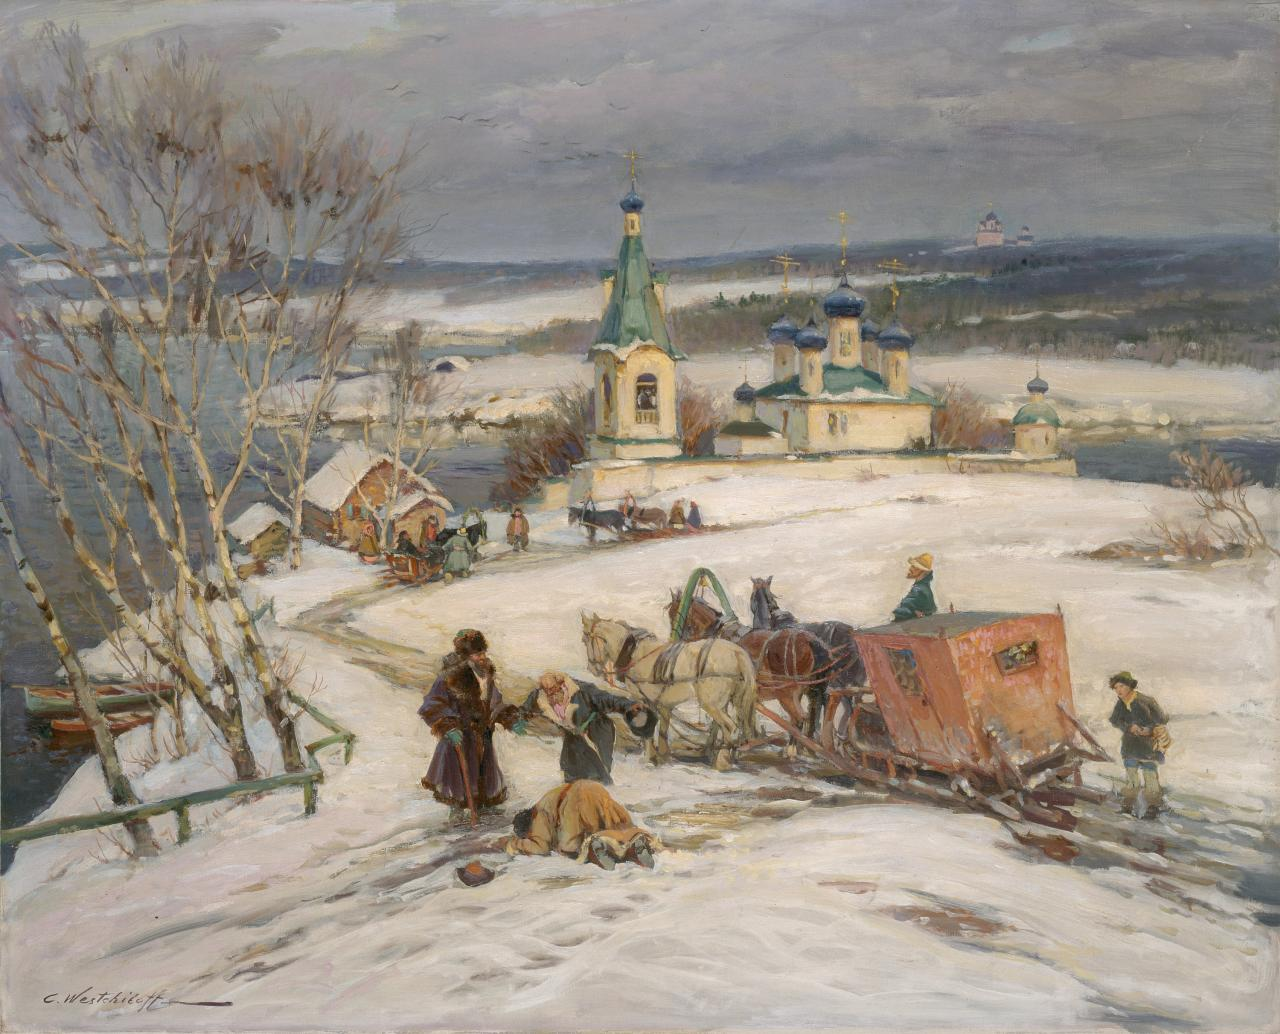 Arrival at a Russian monastery